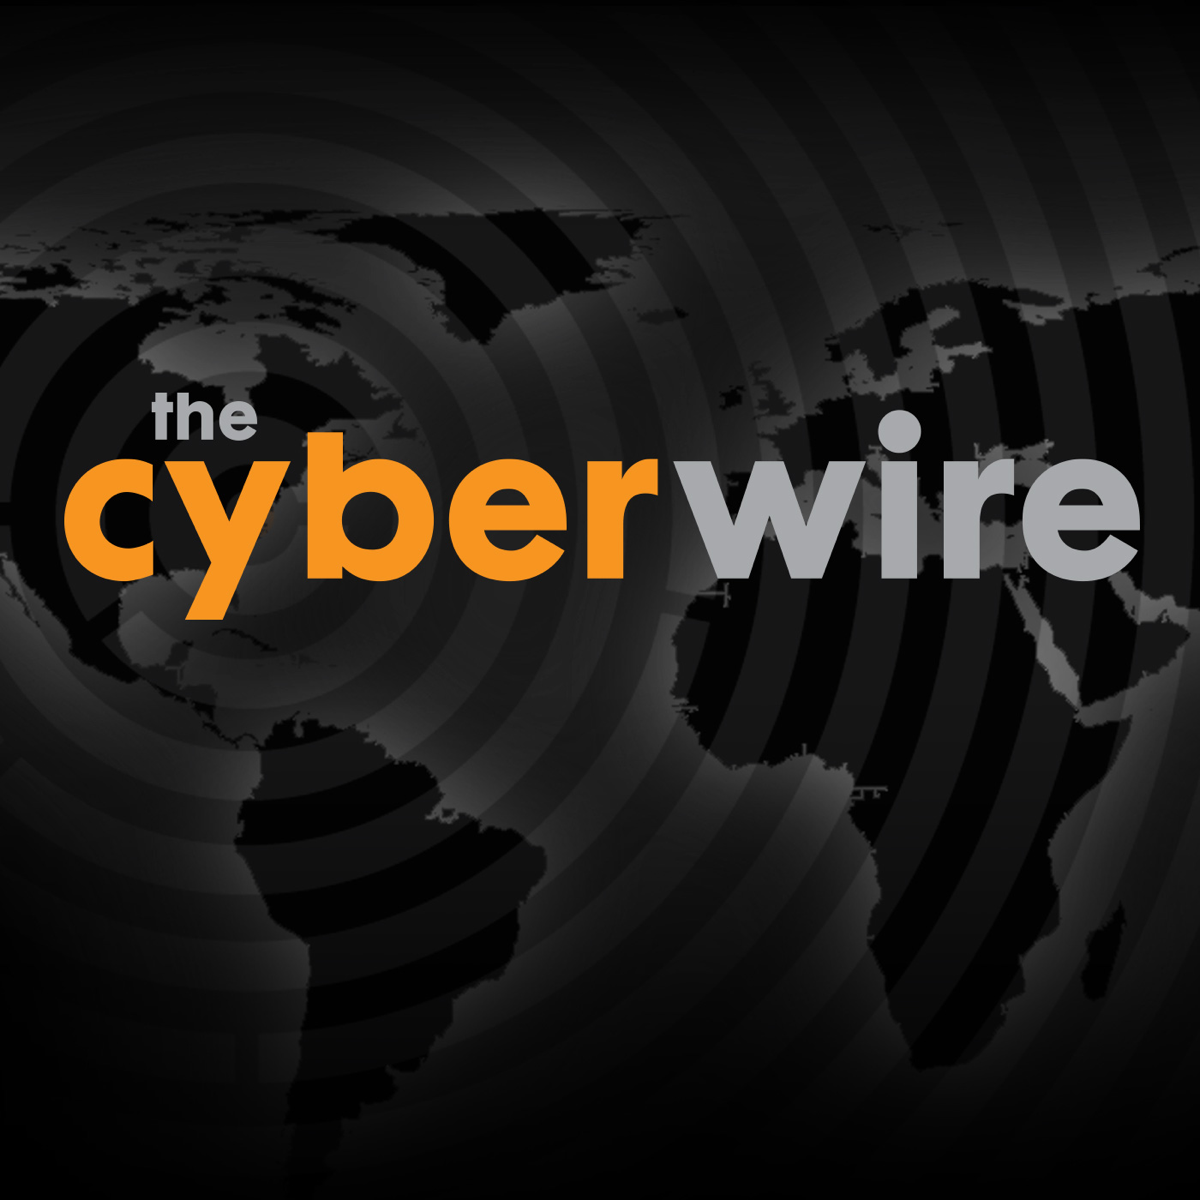 Best episodes of The CyberWire - Your cyber security news connection